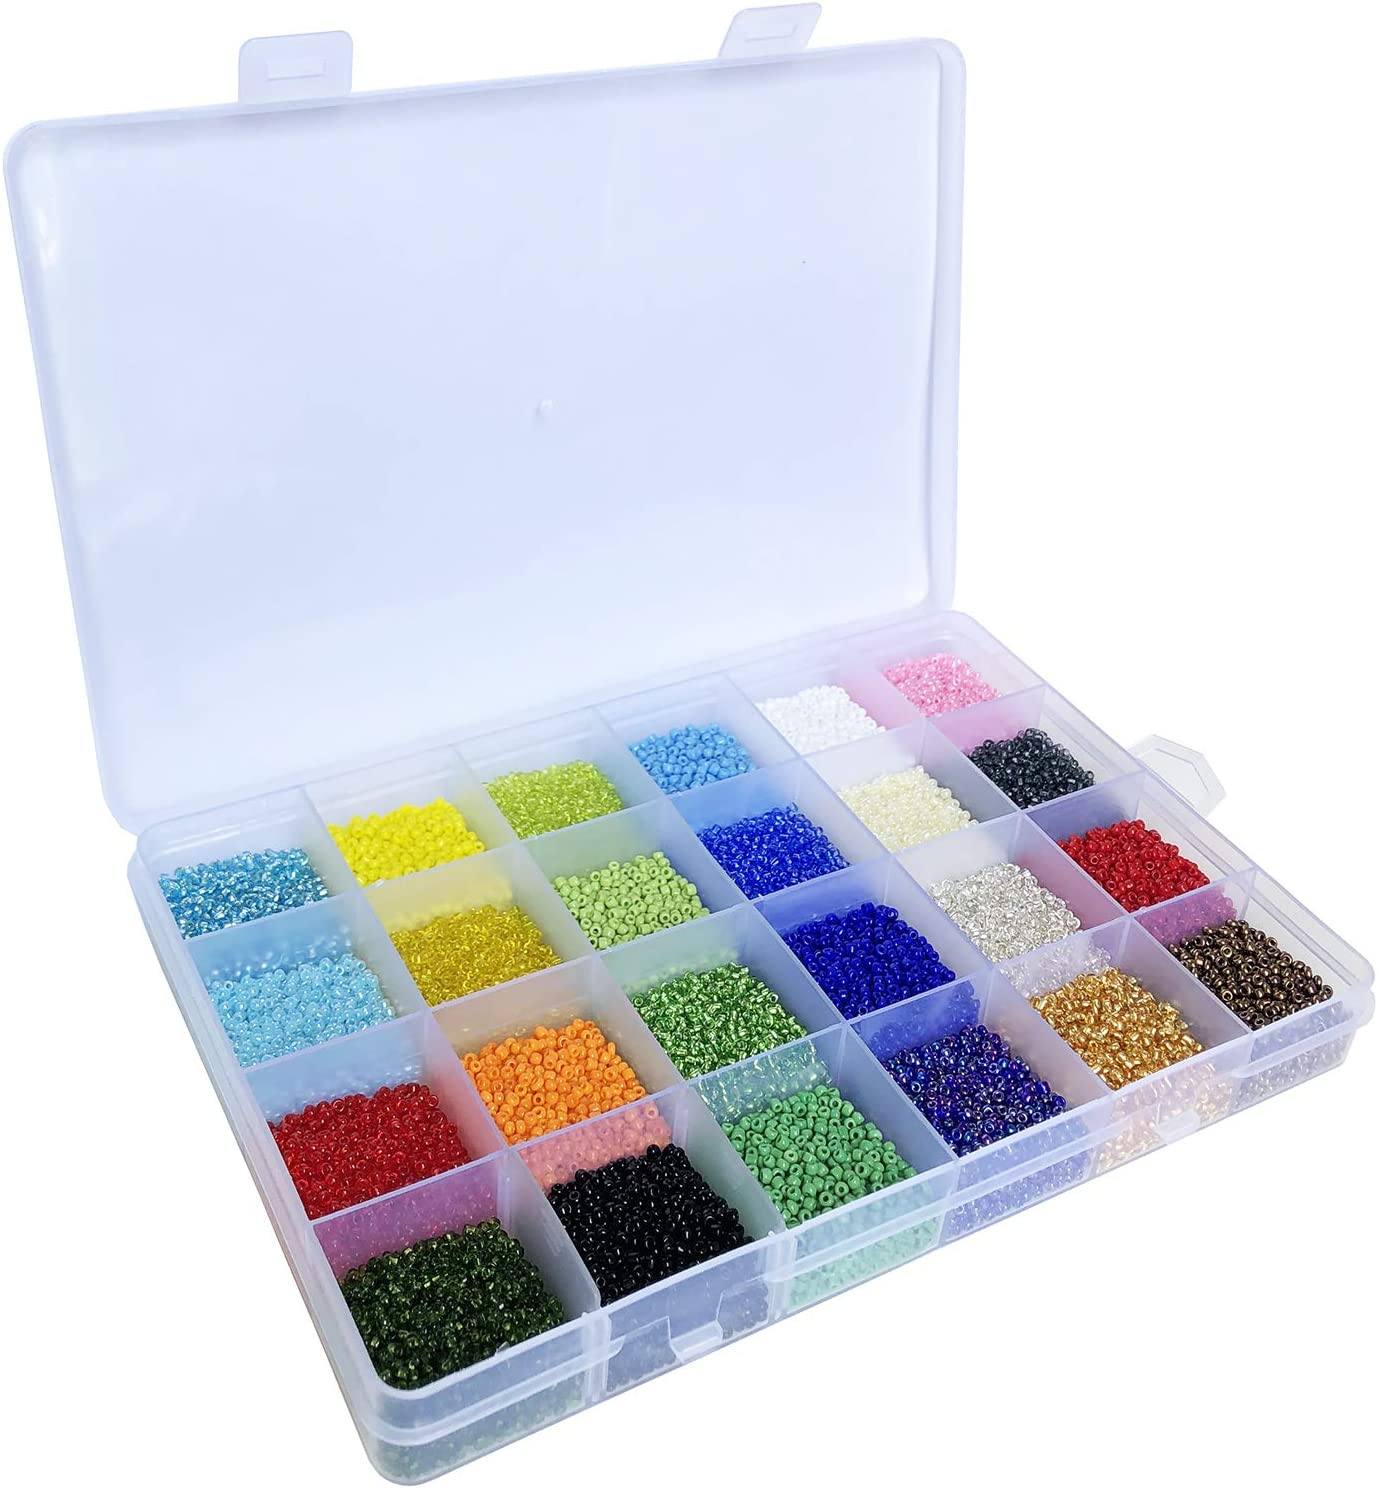 Size 12//0 Crafts Glass Seed Beads 2mm Tiny Pony Beads Assorted Kit with Organizer Box for Jewelry Making 24 Assorted Multicolor Set, Total About 24000pcs